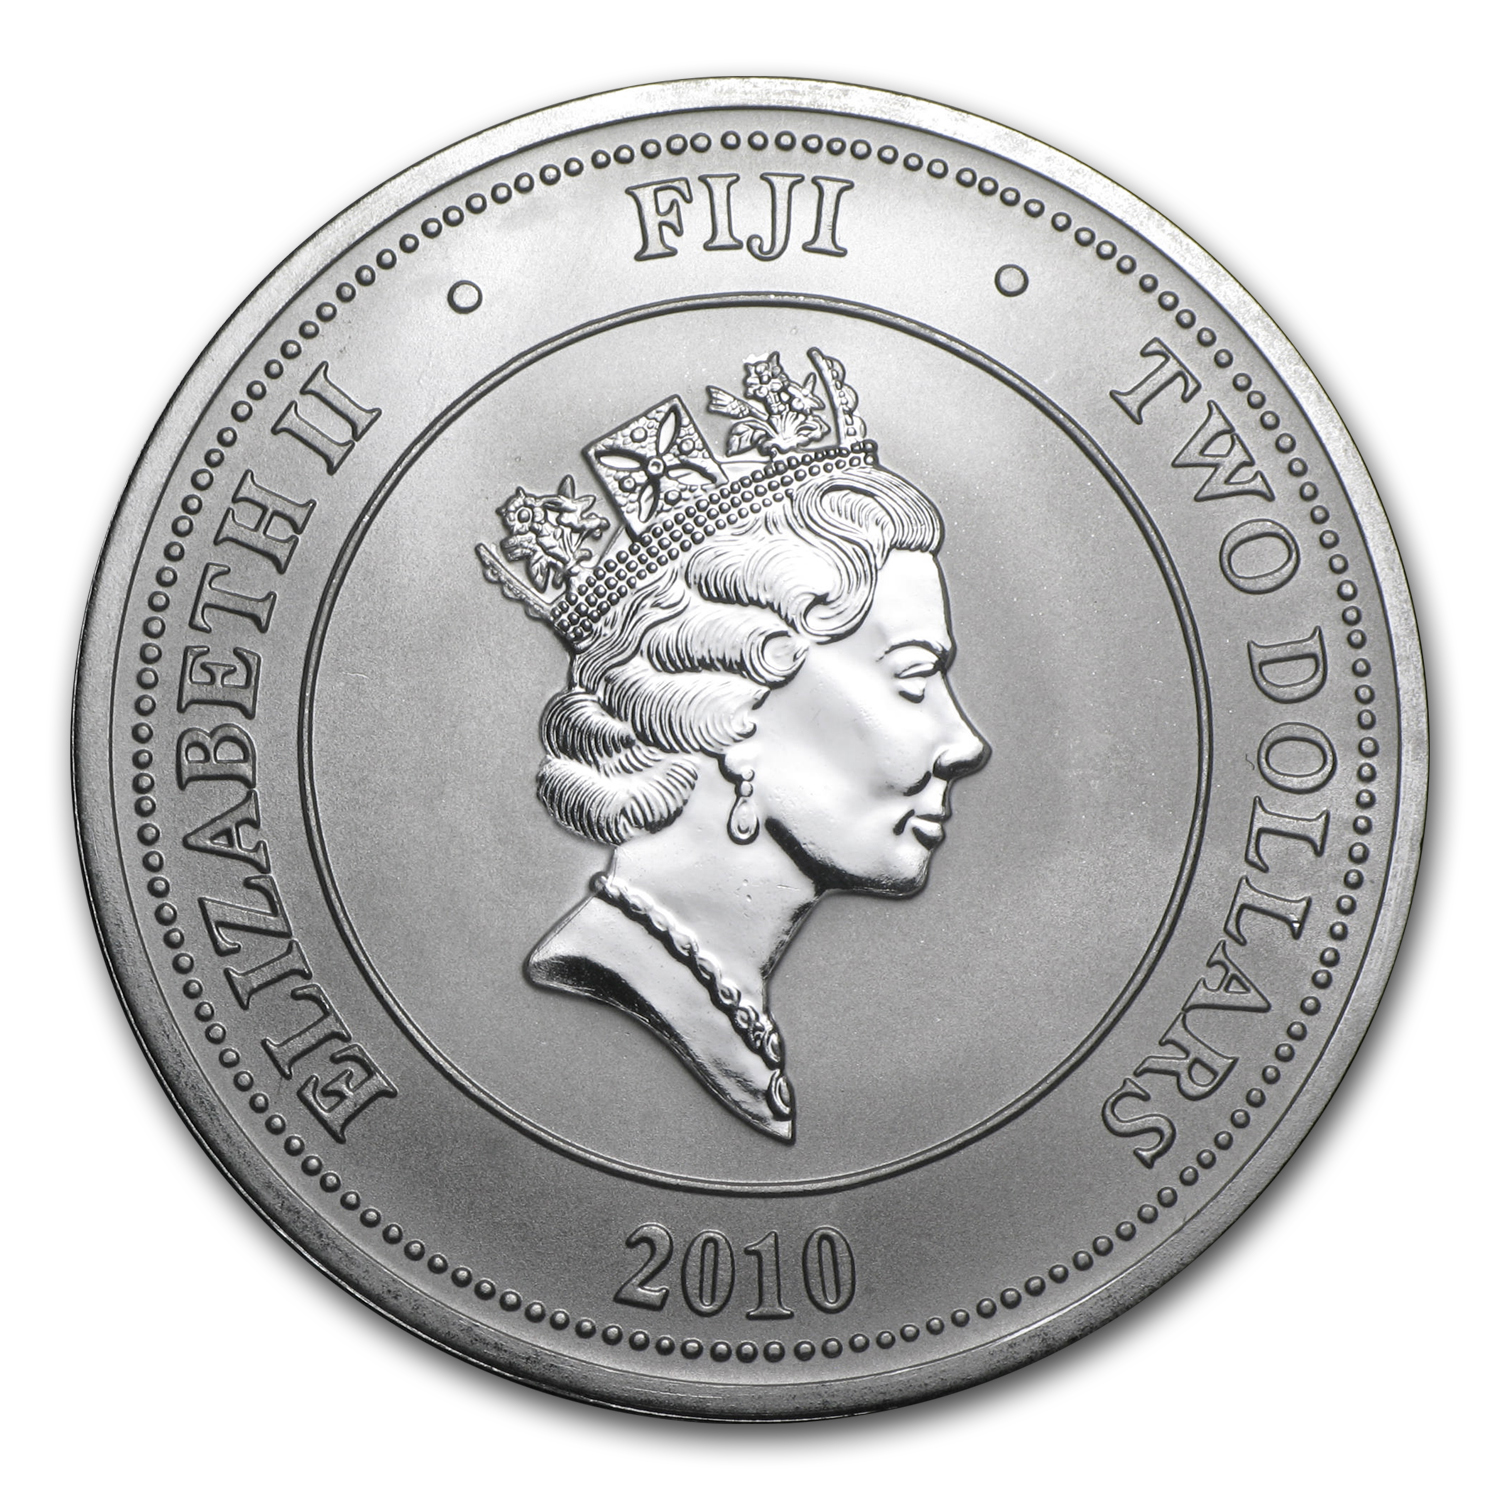 2010 1 oz Silver New Zealand $2 Fiji Taku .999 Fine